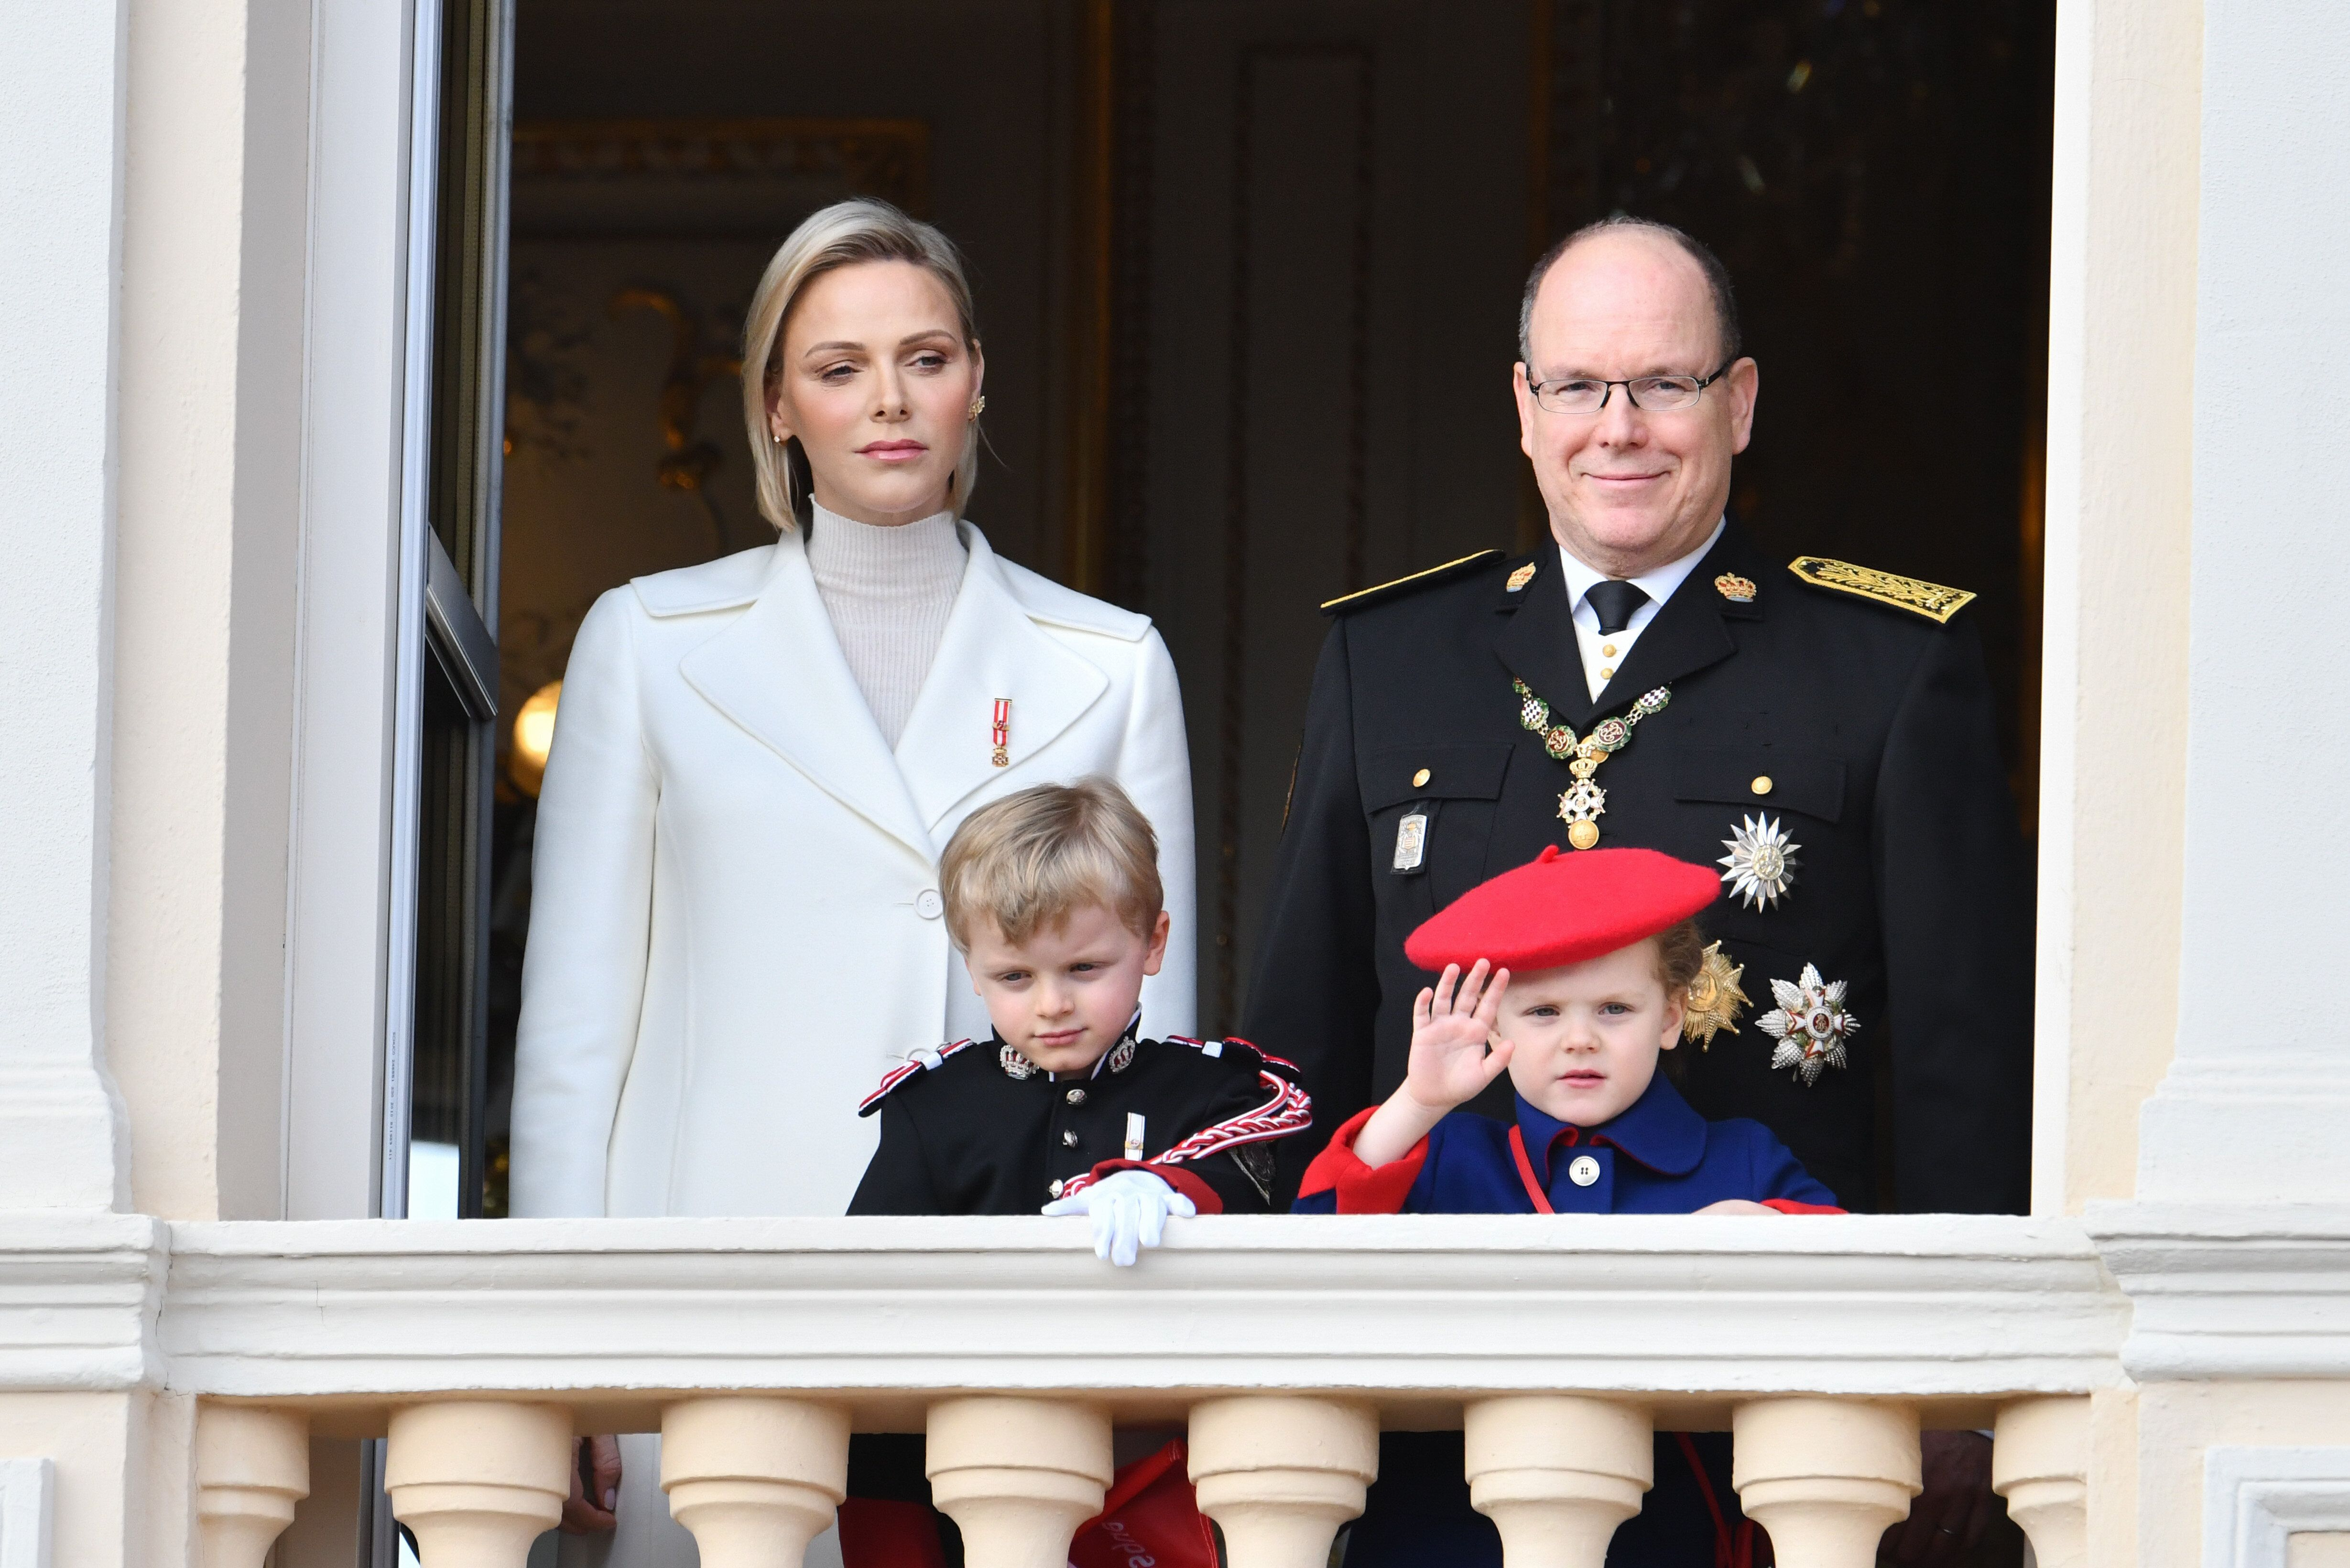 Princess Charlene and Prince Albert II of Monaco, with children Jacques and Gabriella, pose on the palace balcony during the